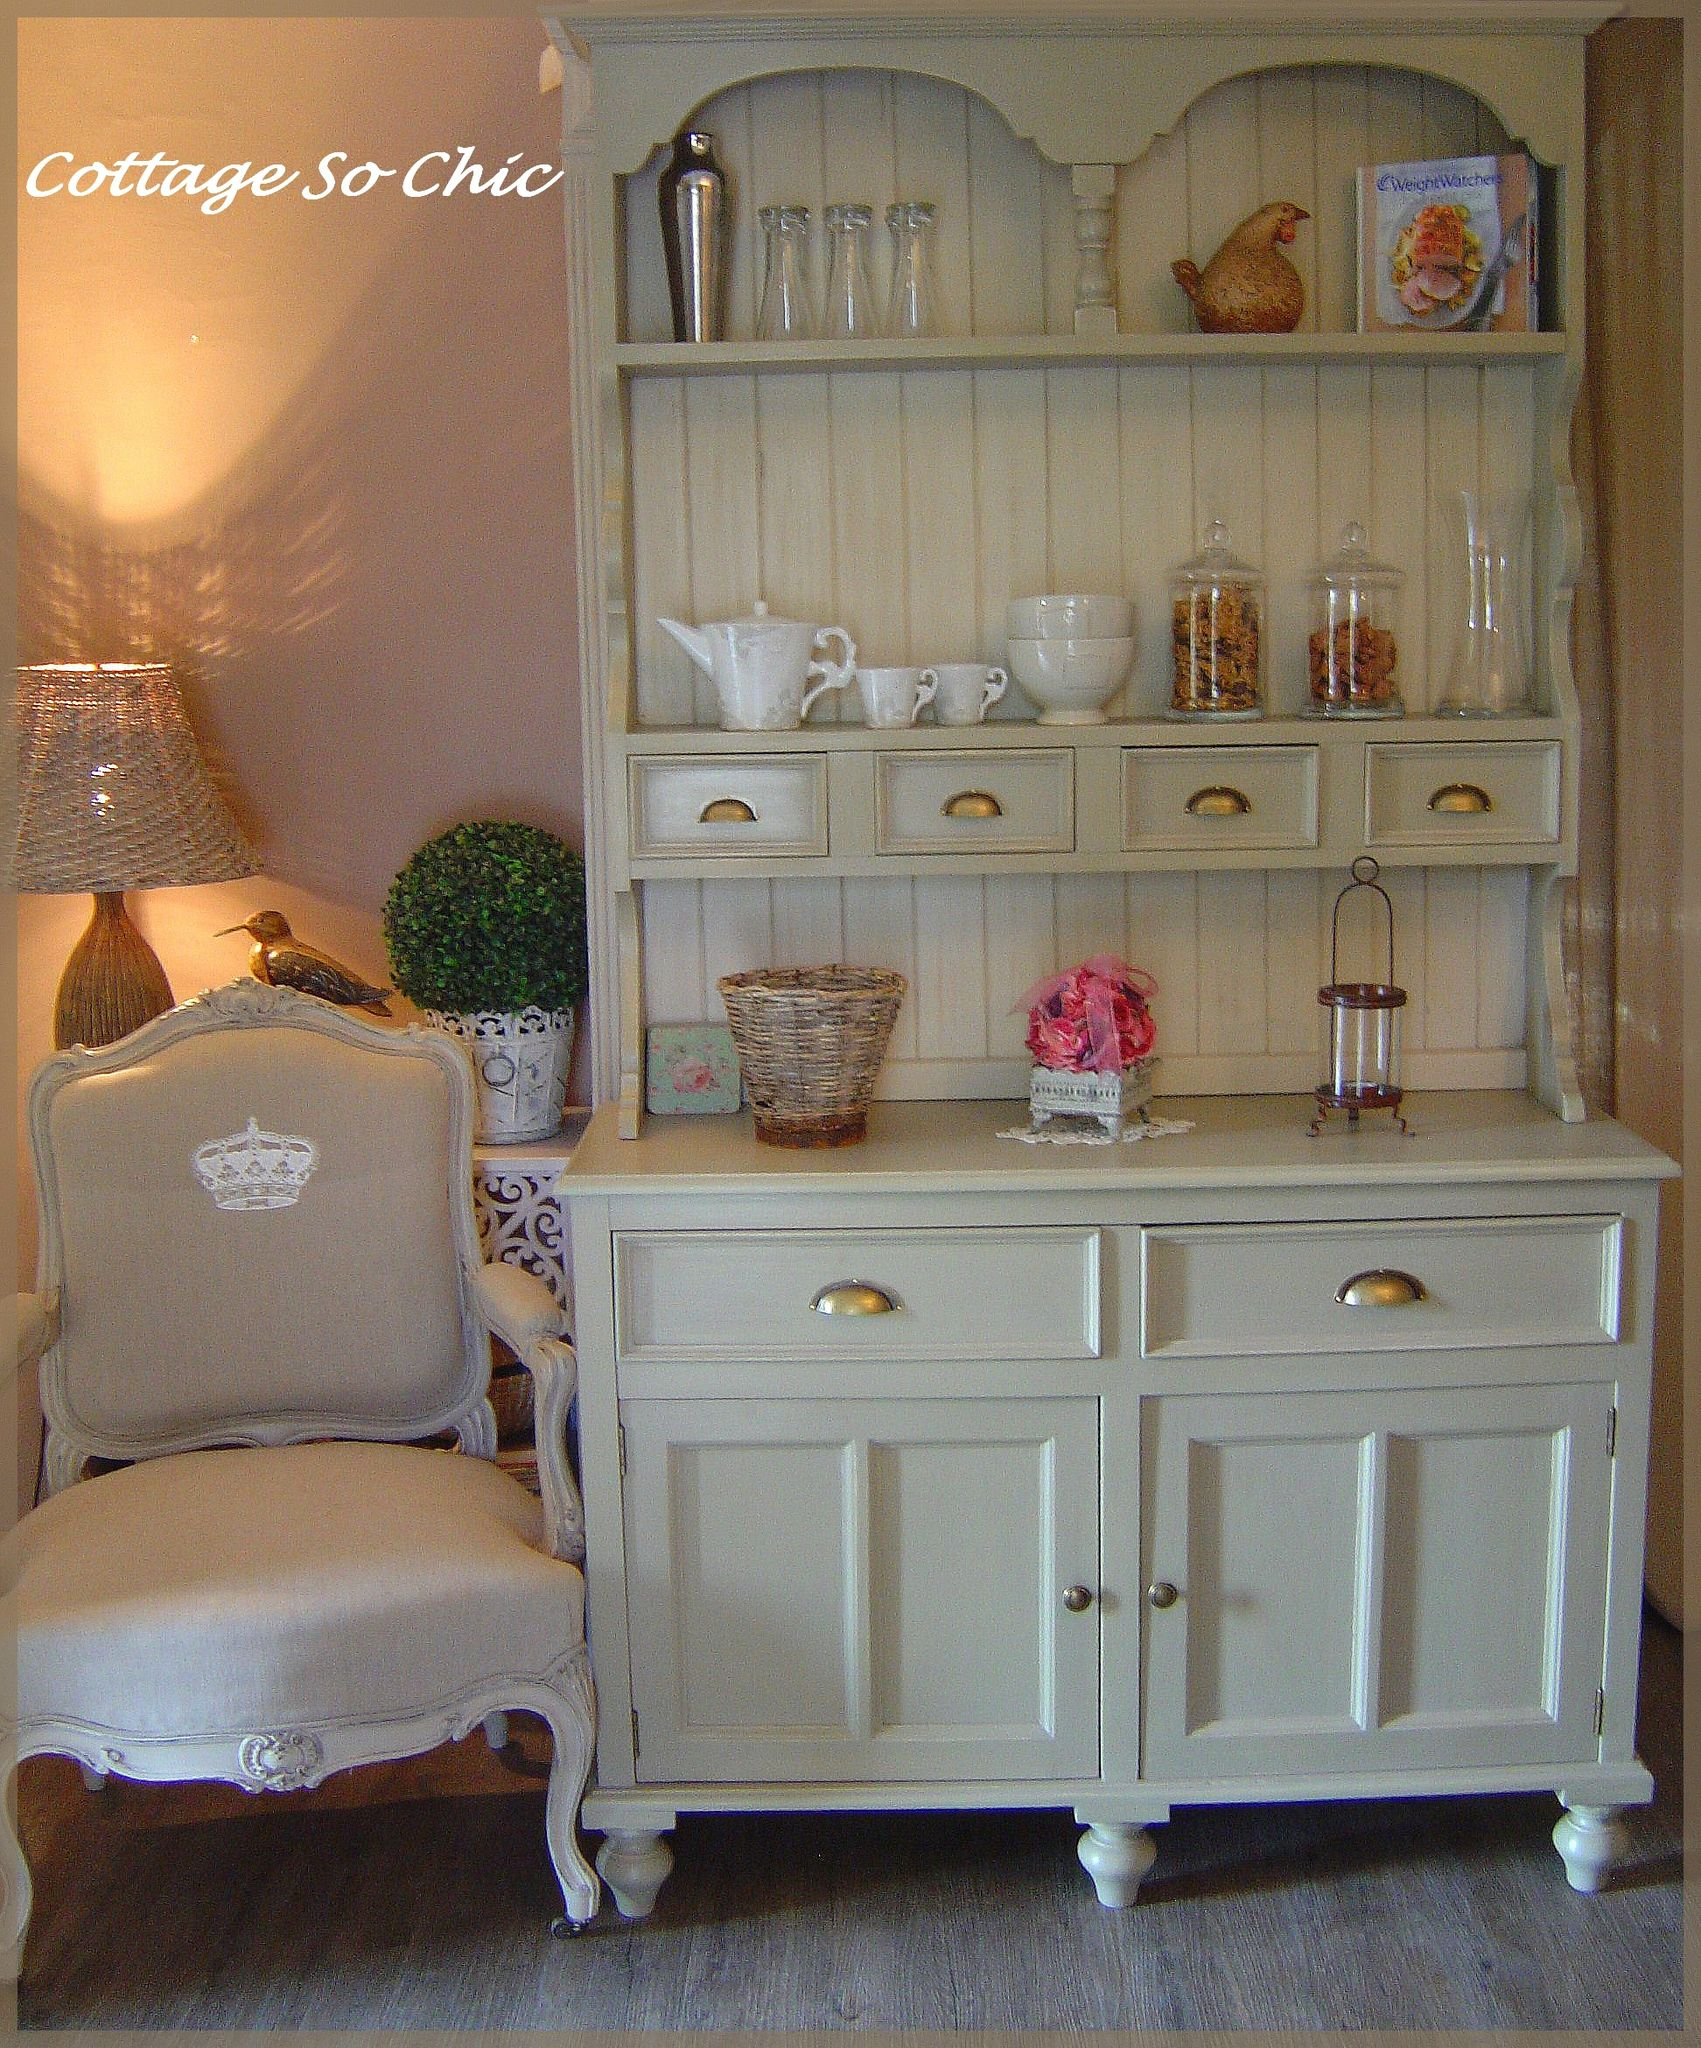 Buffet campagne so chic cottage so chic - Meuble campagne chic ...